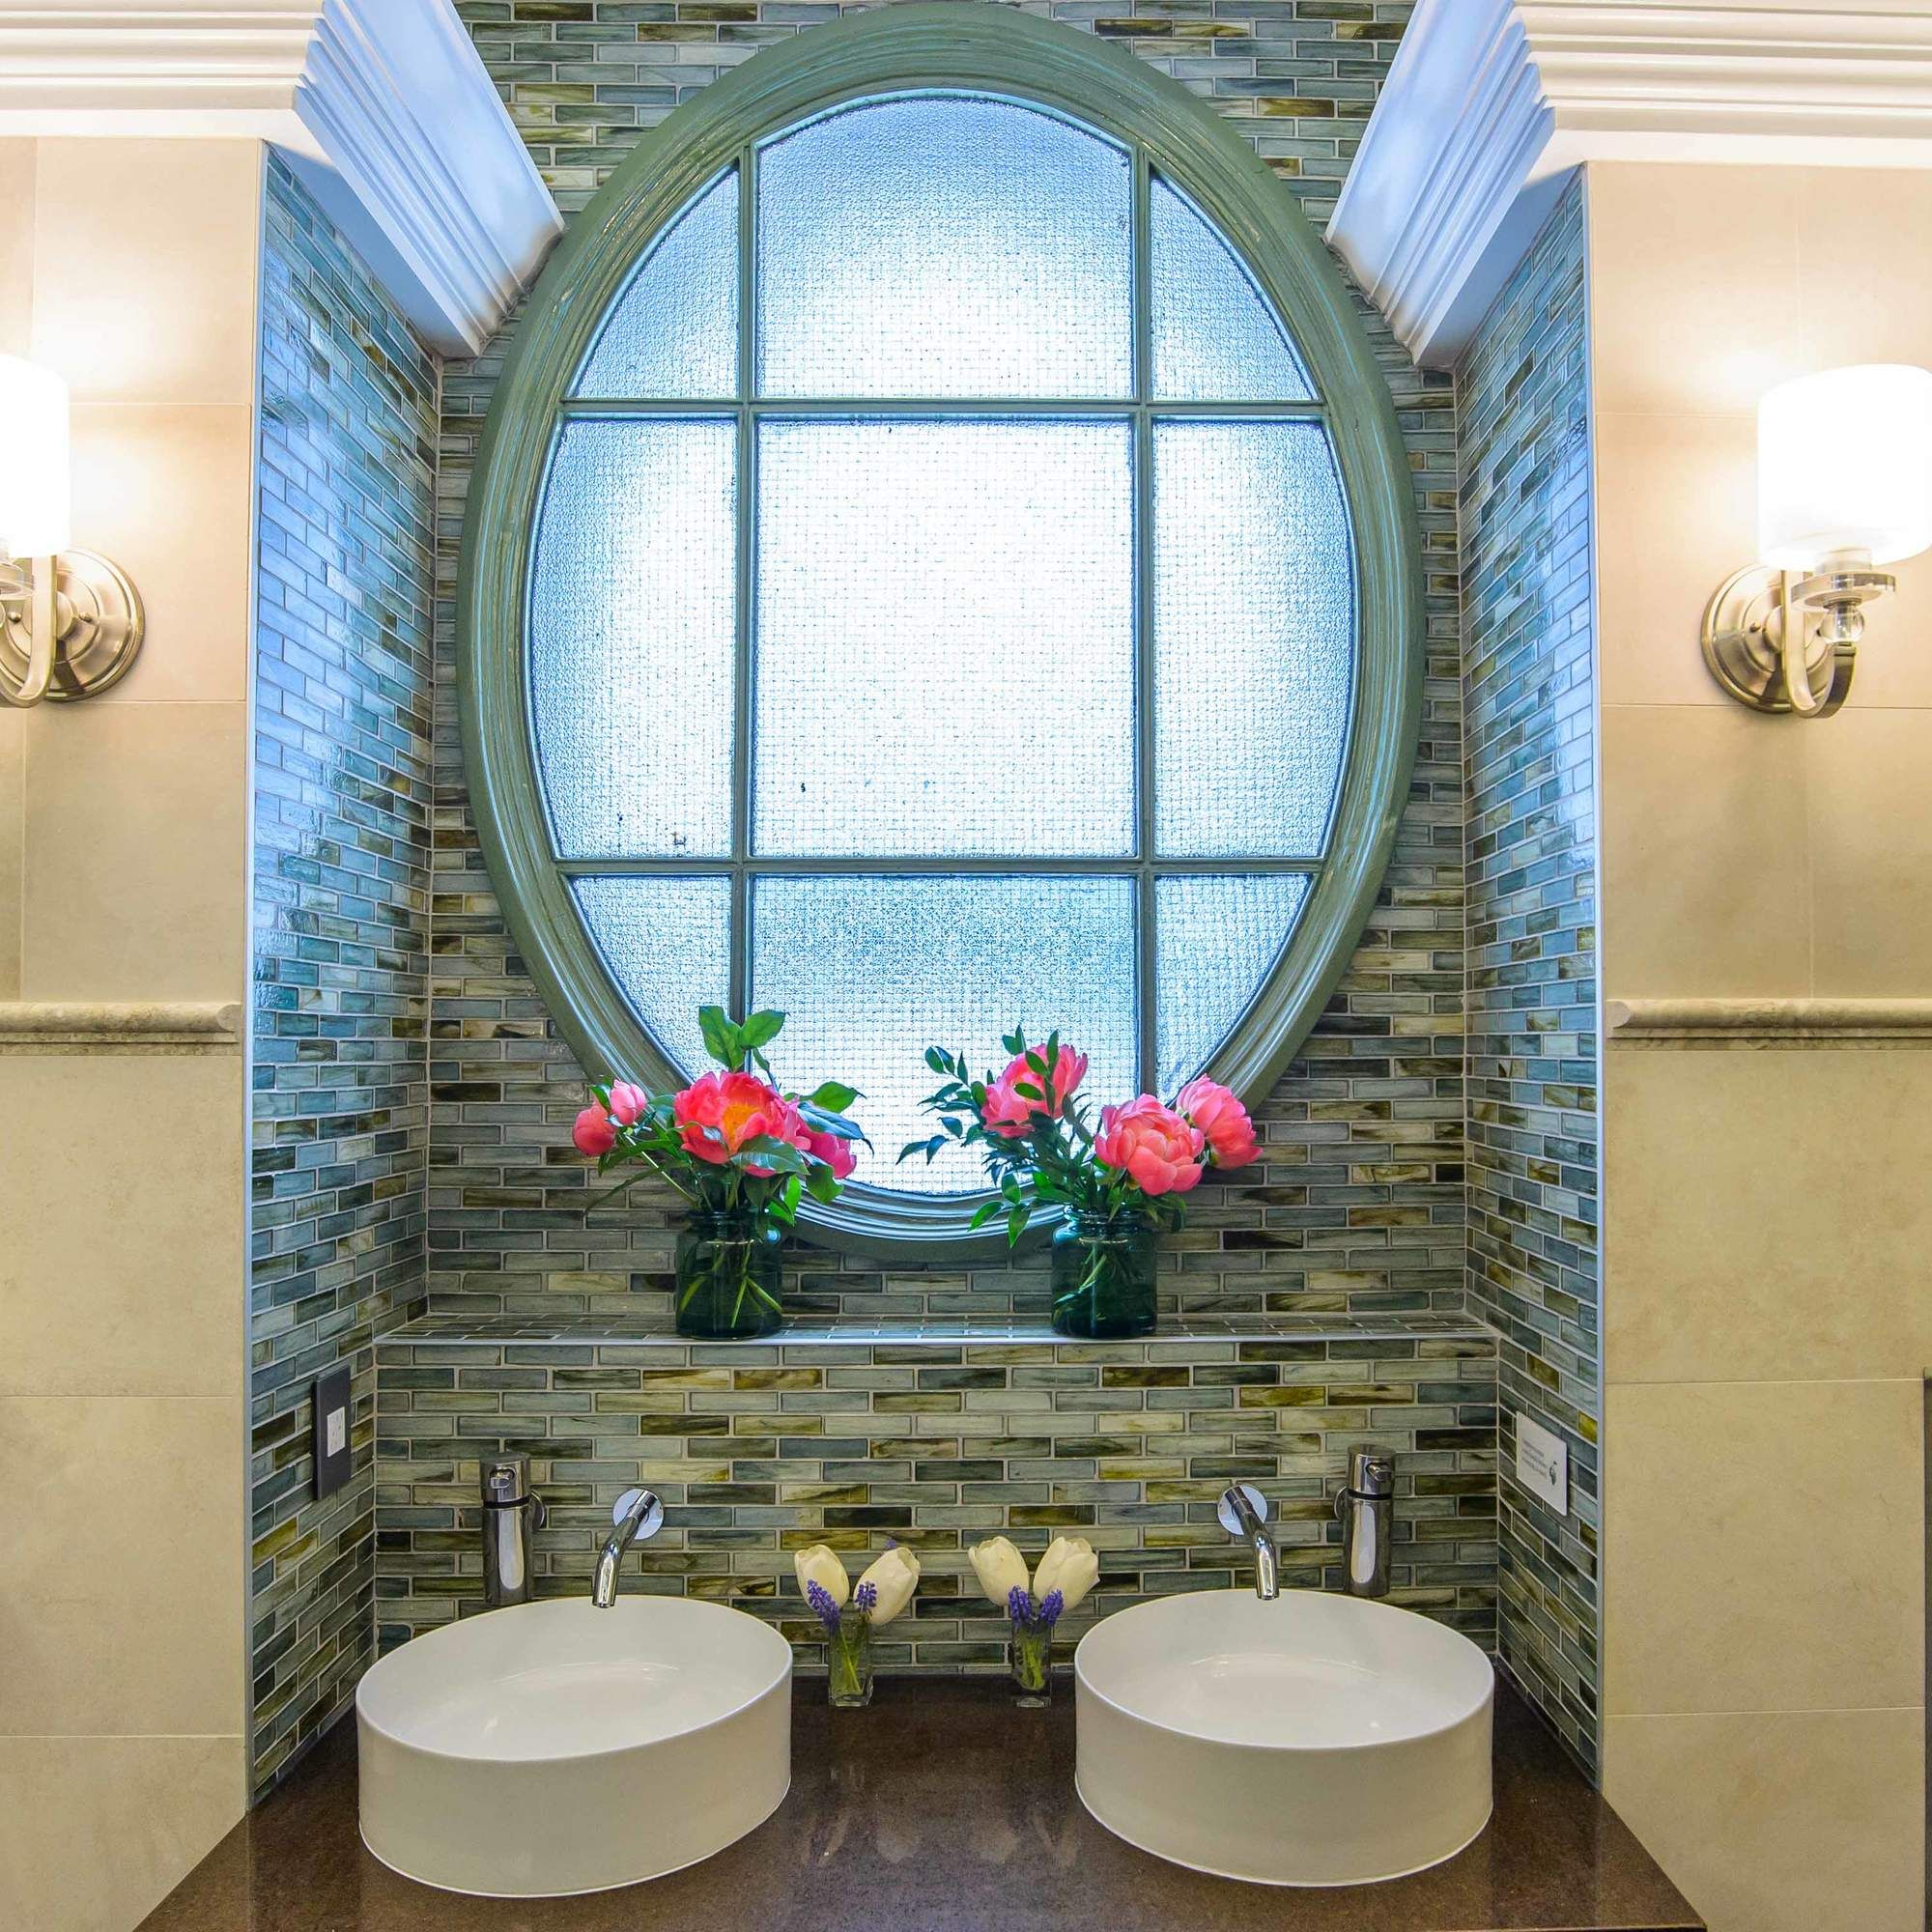 This Is The Nicest Public Bathroom In New York City Public Bathrooms Round Mirror Bathroom Public Restroom